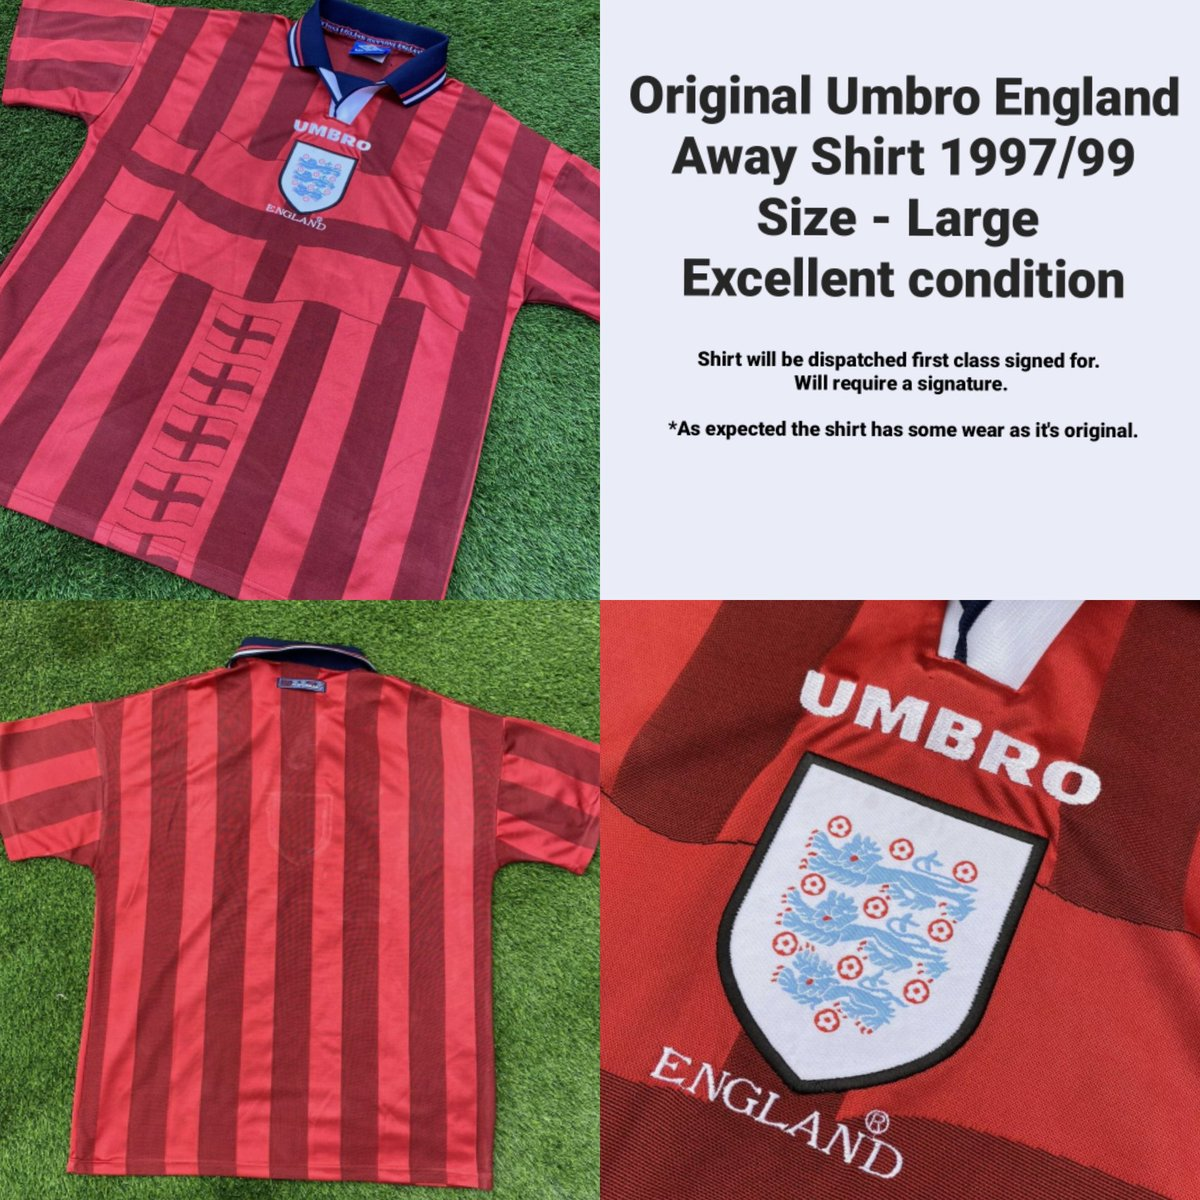 🚨 GIVEAWAY TIME 🚨  Who wants to be in with a chance to win a vintage 97/99 England Away shirt? All you have to do is; ❤ Like 👤 Follow 🔄 Retweet  A random follower who liked & retweeted this post will be selected during half time of 🏴 v 🇵🇱 on 31/03/21  #Giveaway #threelions